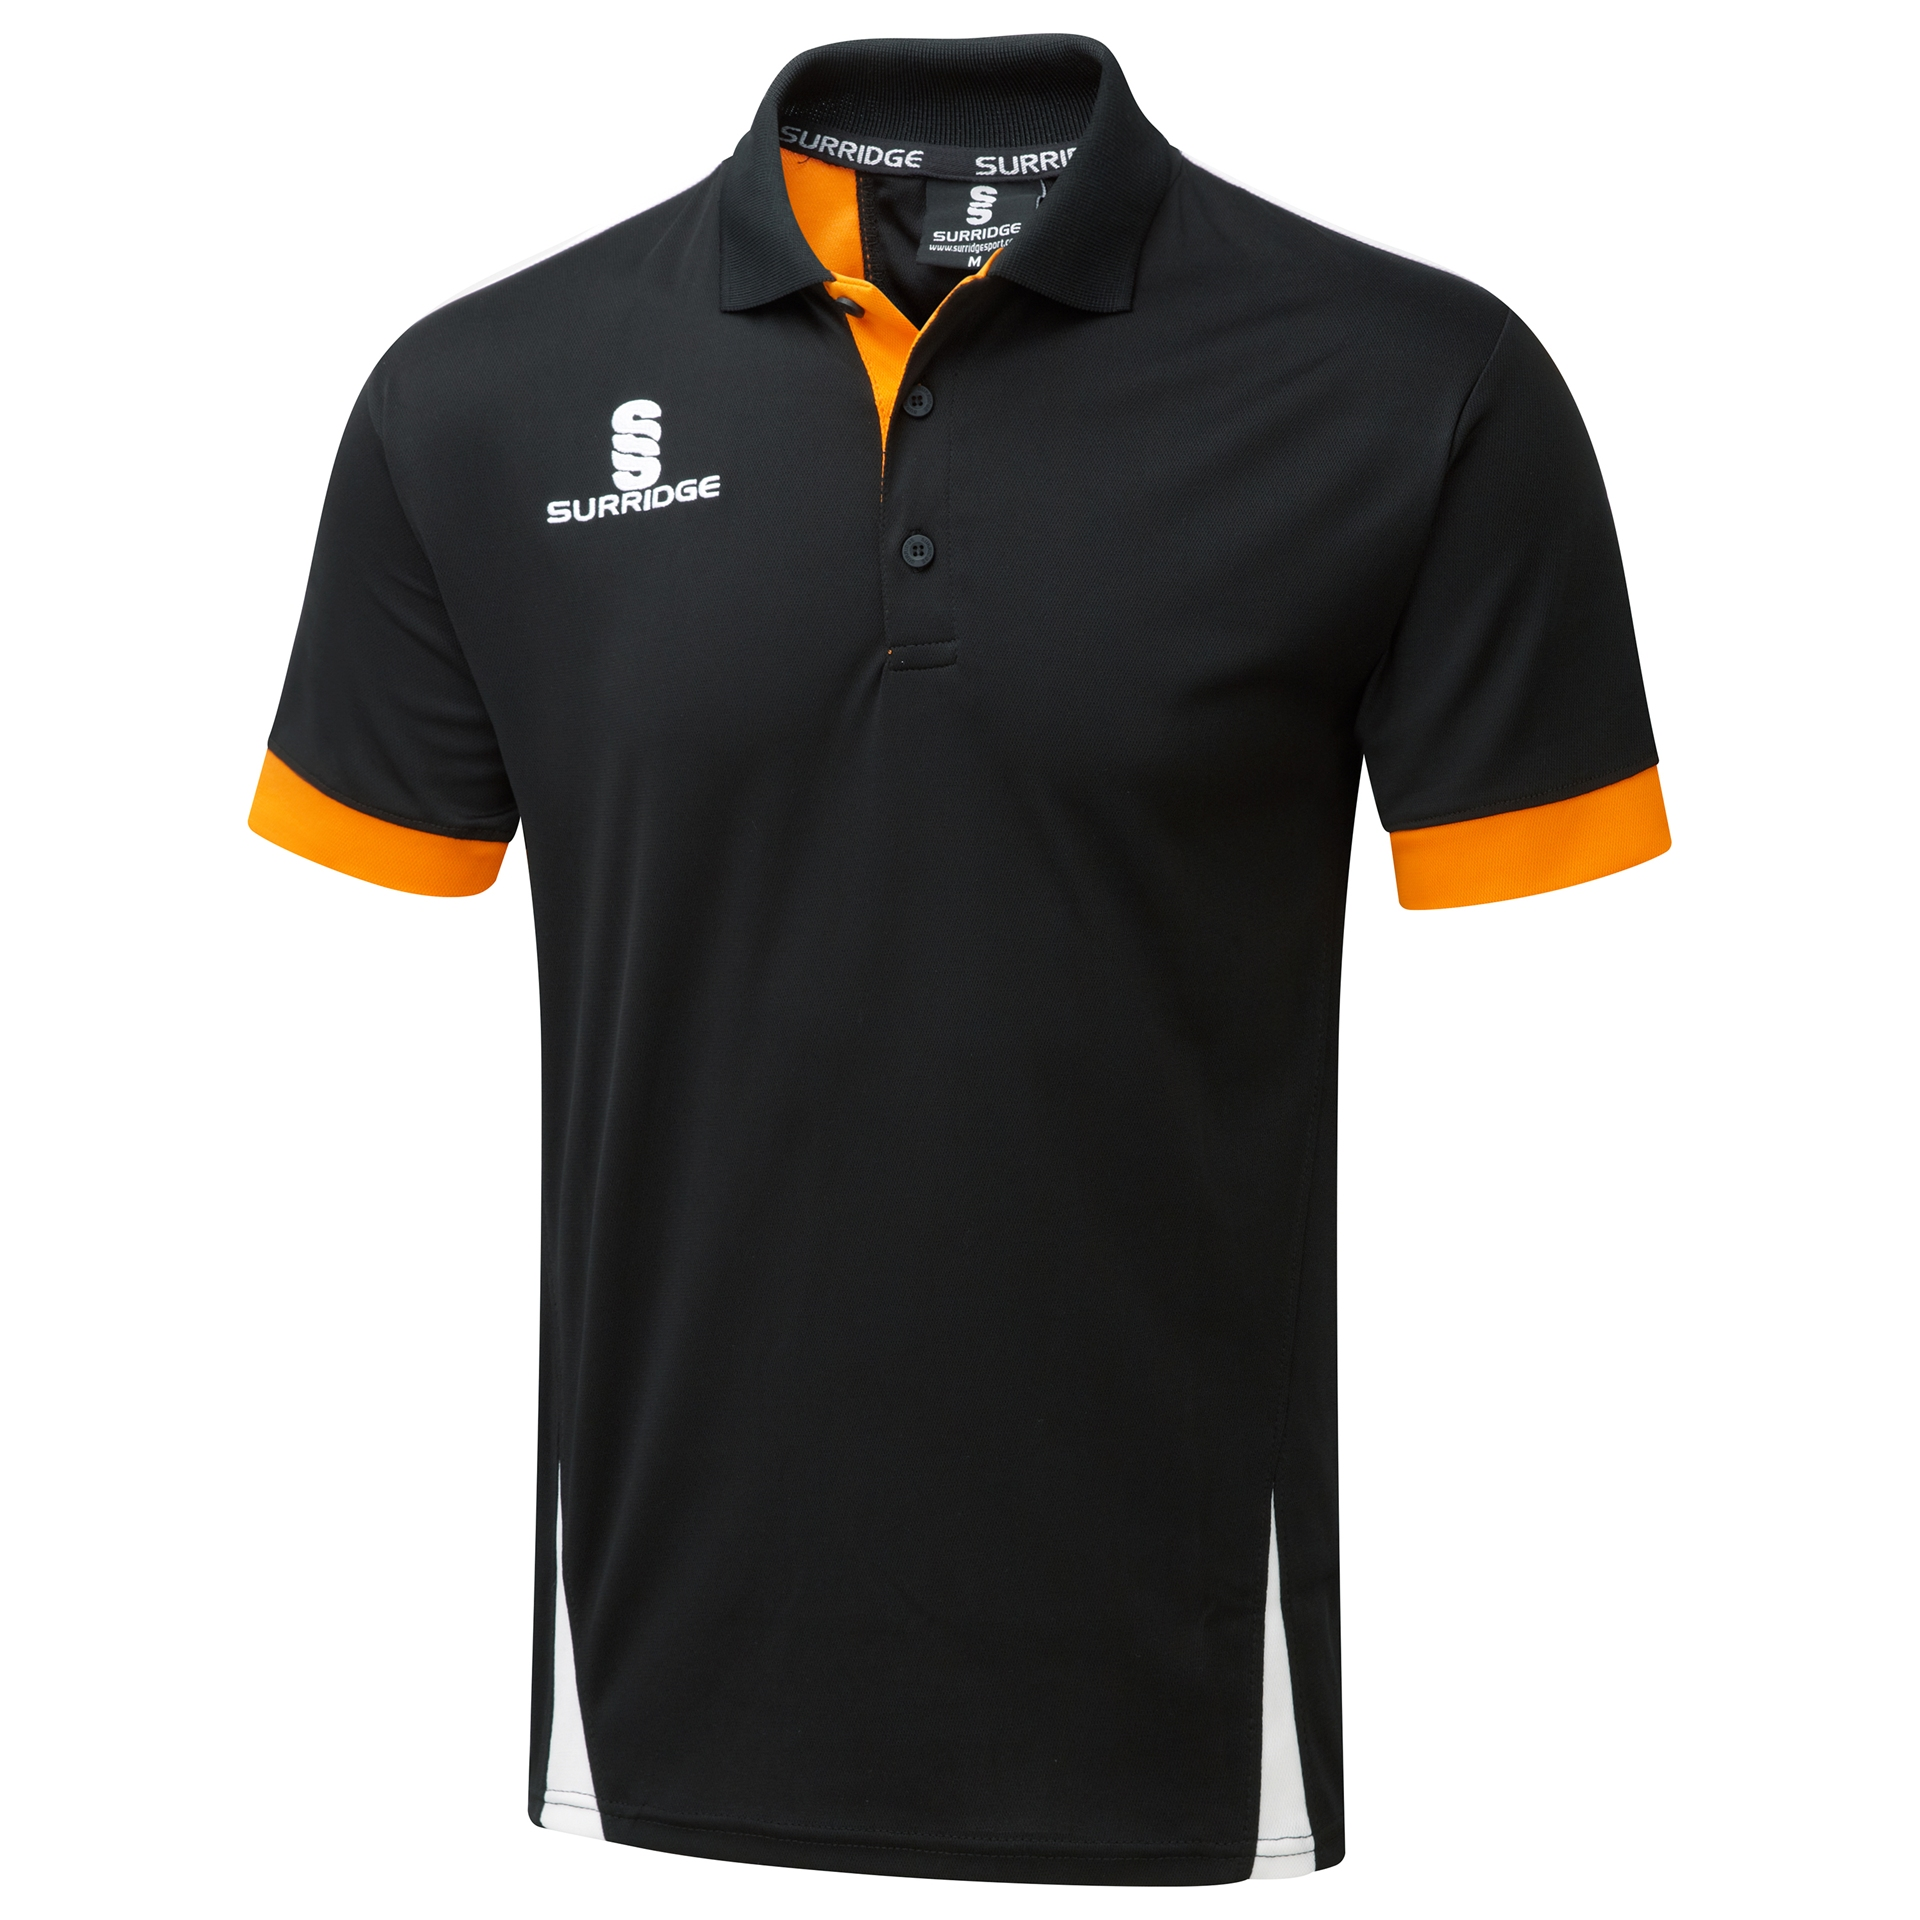 Polo Shirts. Many high quality polo shirts at wholesale prices are available from Blank Shirts. Polo shirts have a great look and feel and became popular within .